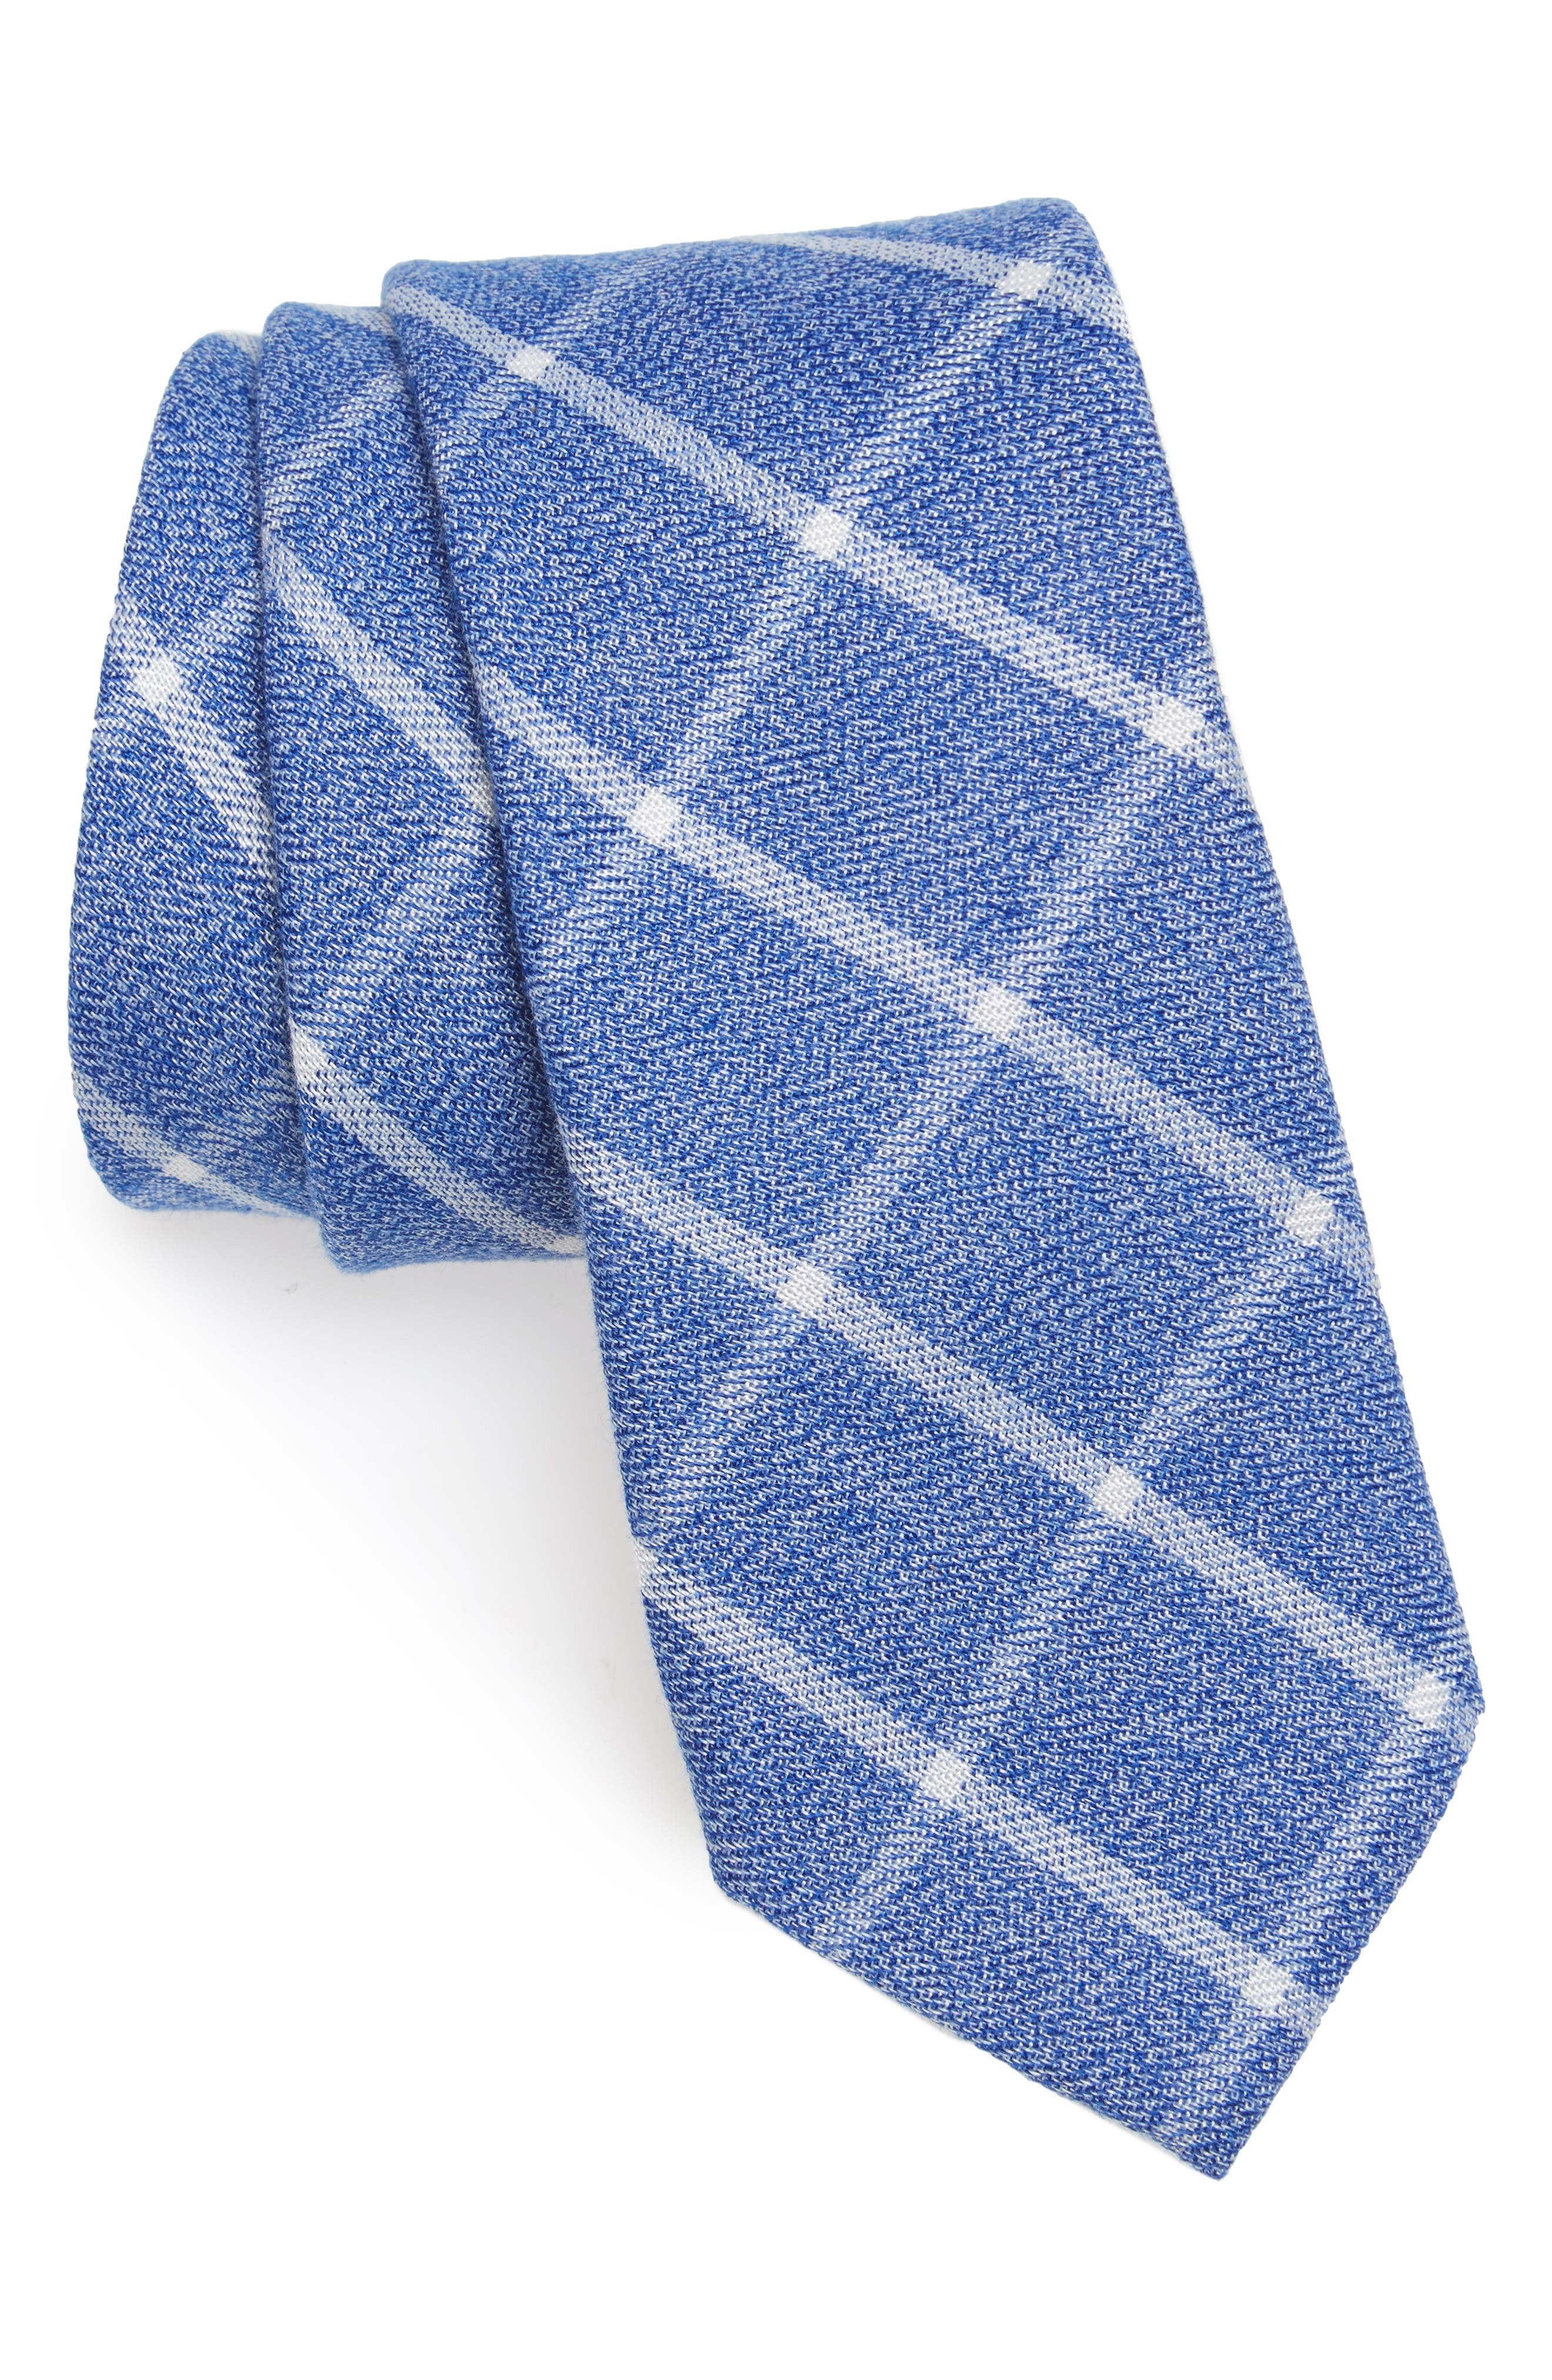 Wilbur Check Cotton Tie,                             Main thumbnail 1, color,                             410